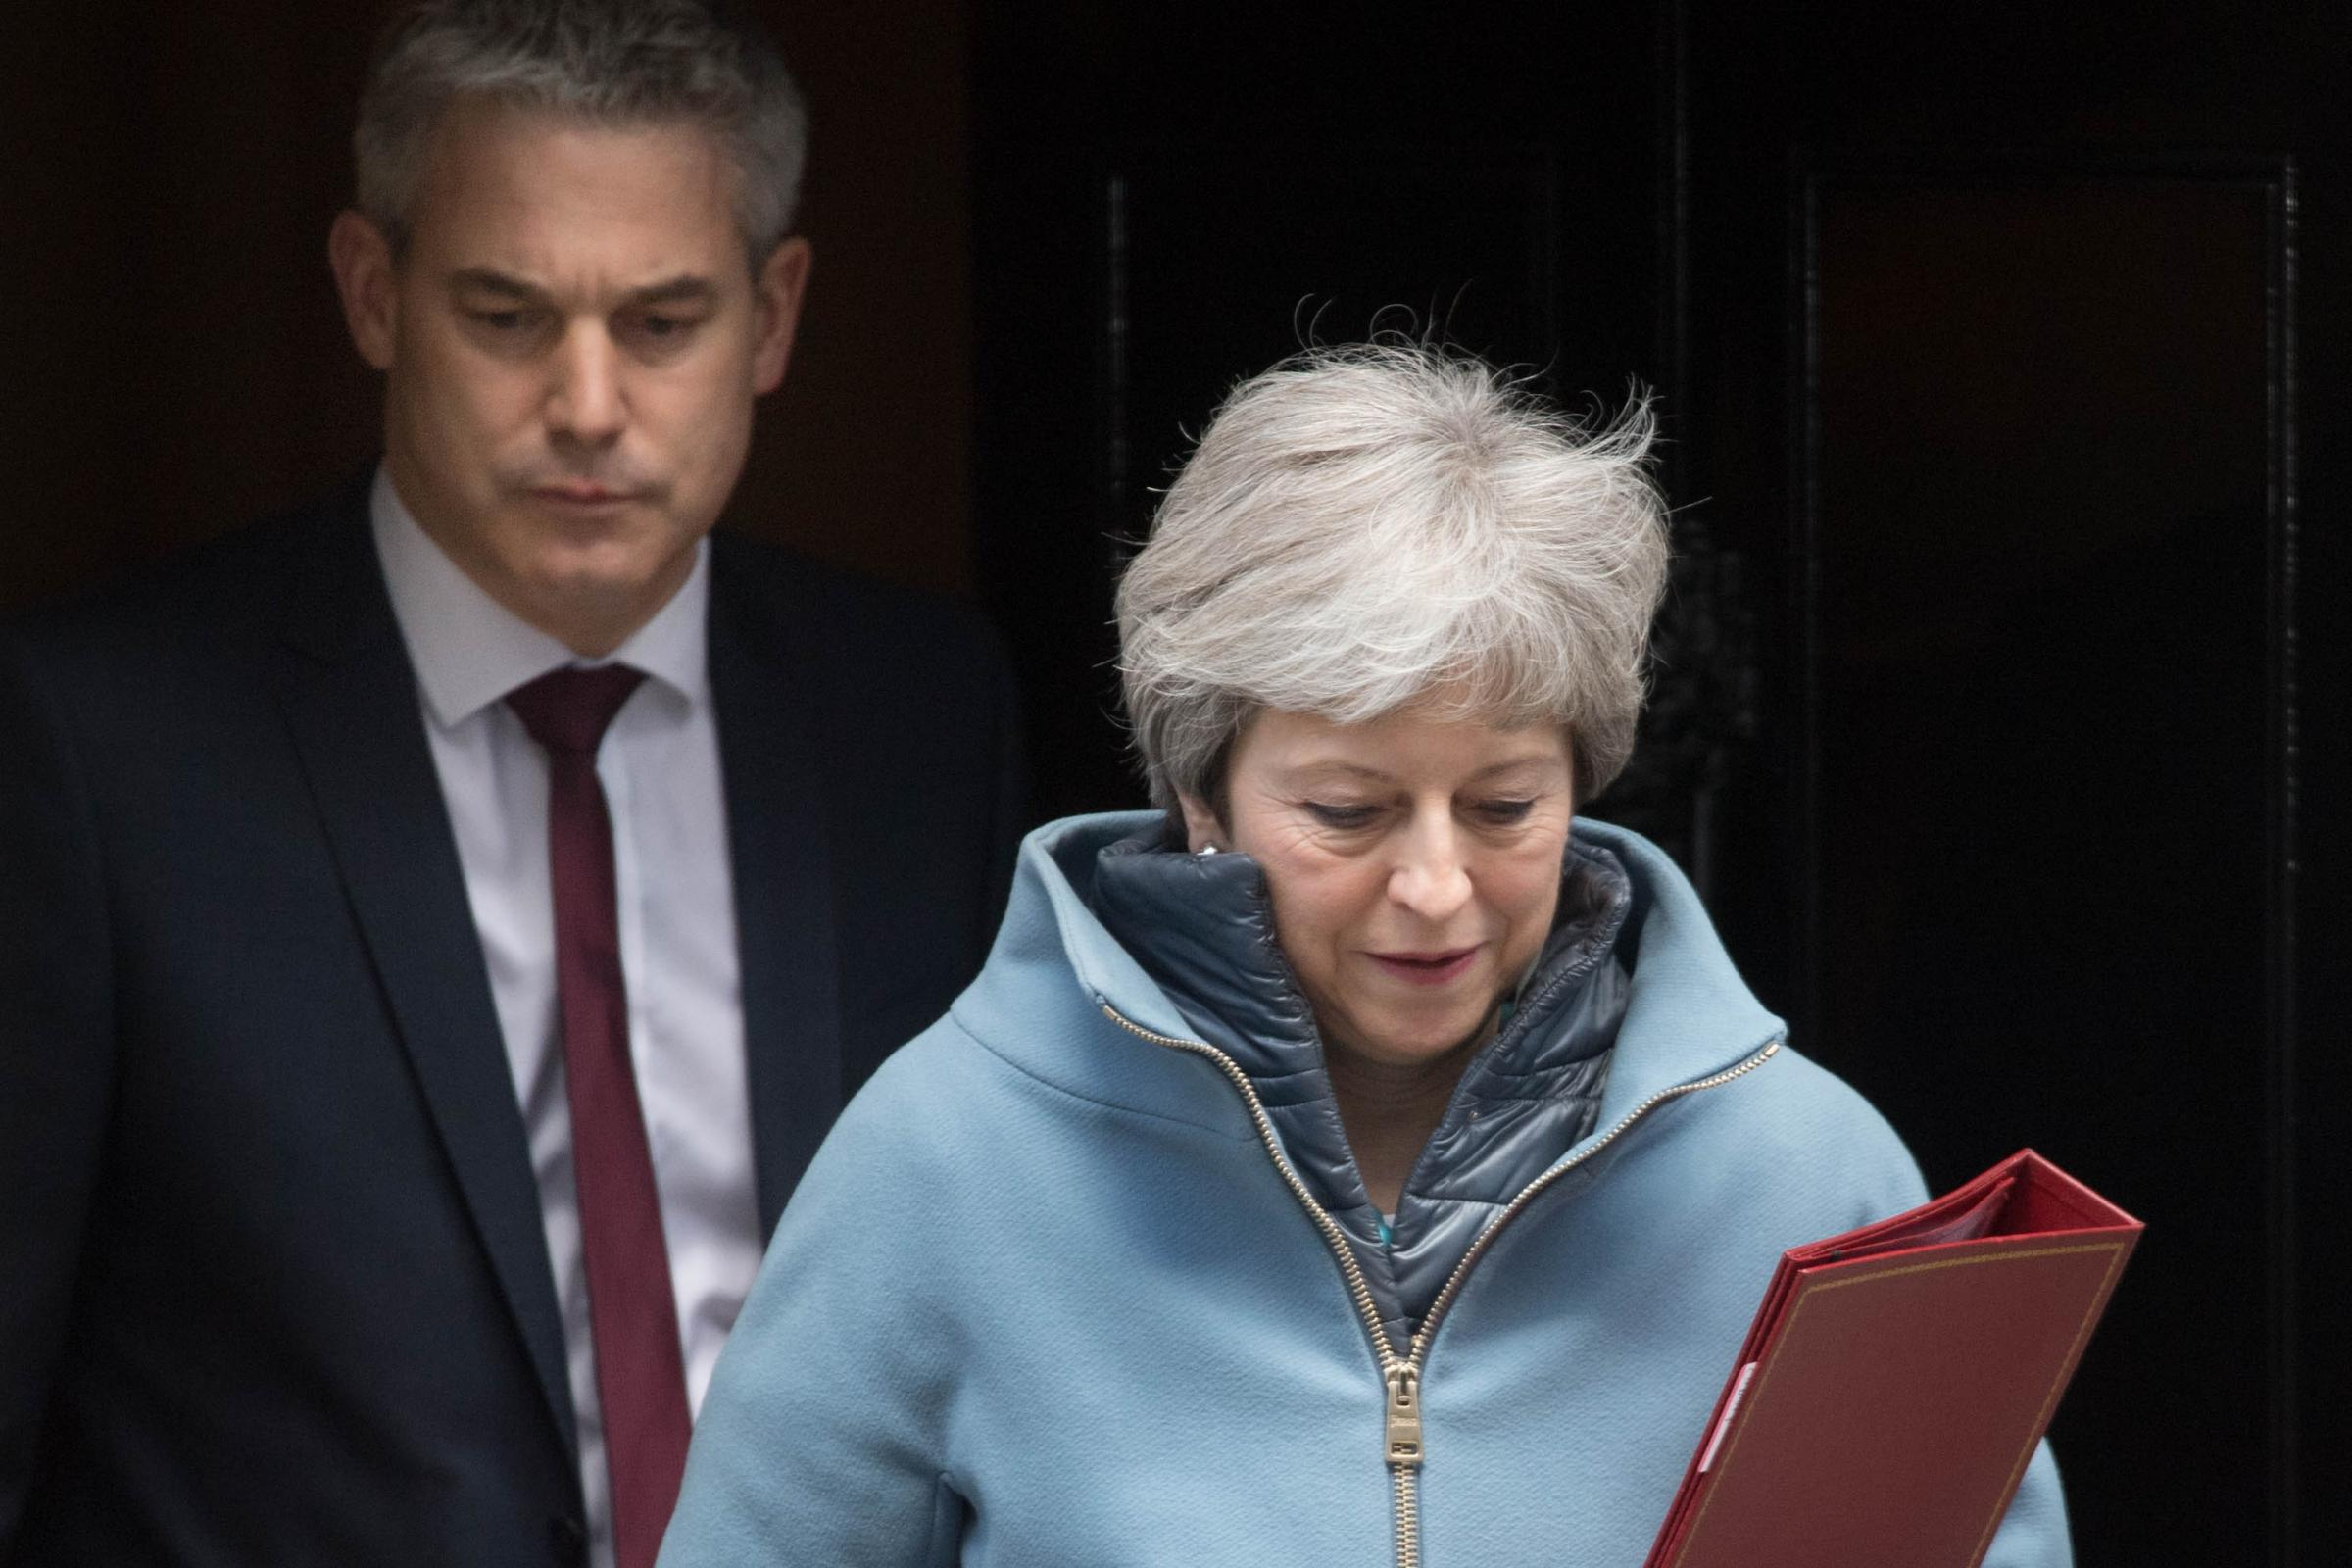 Brexit Secretary Stephen Barclay and PM Theresa May leave 10 Downing Street after a Cabinet meeting